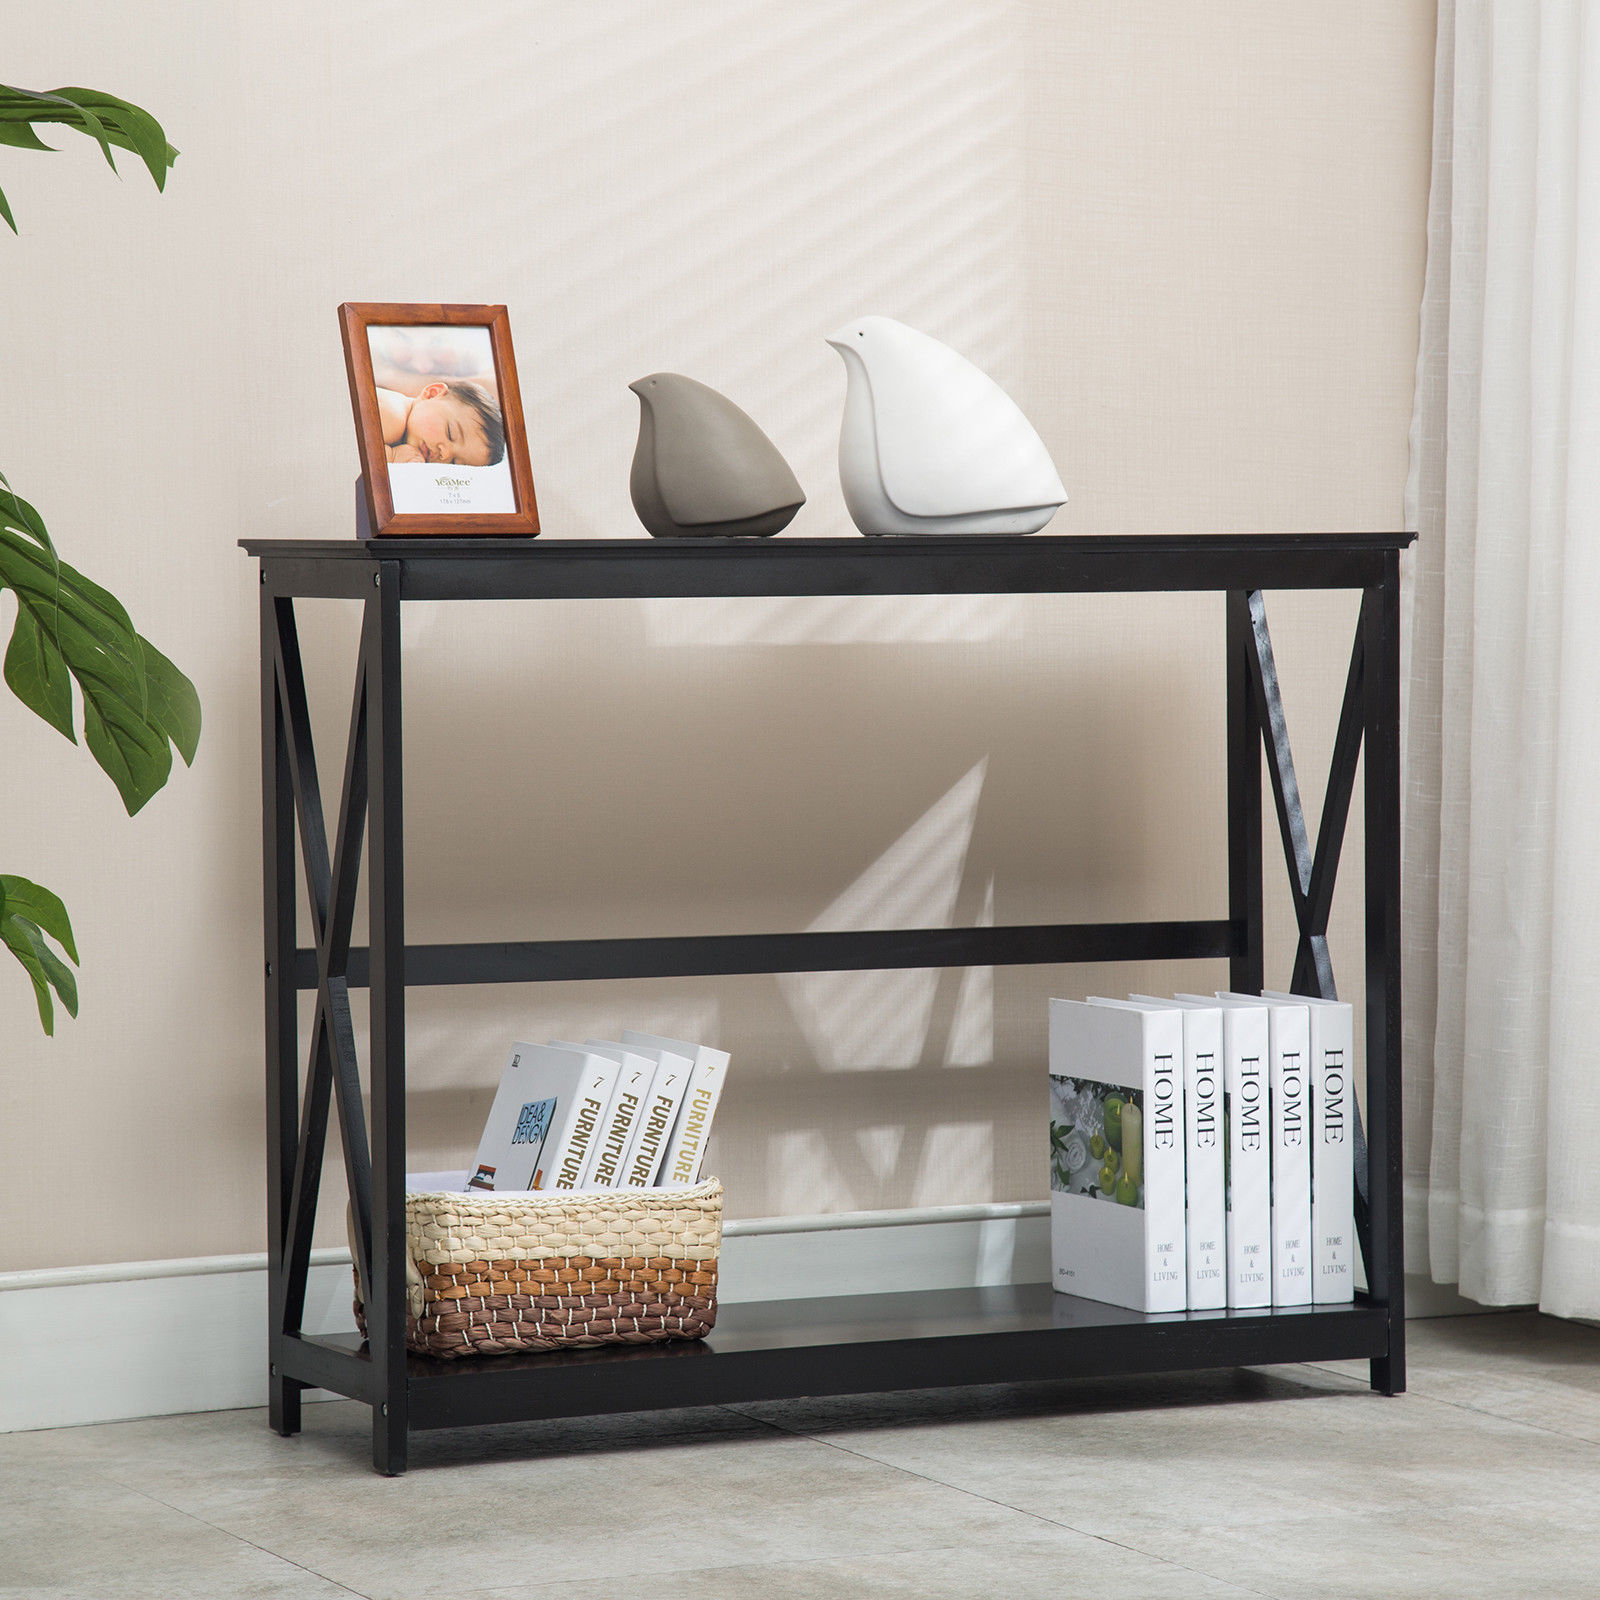 tiers black console table accent tables with storage shelf hallway tiered metal tier furniture marble tops tall thin lamps threshold espresso cymbal stand white wicker outdoor